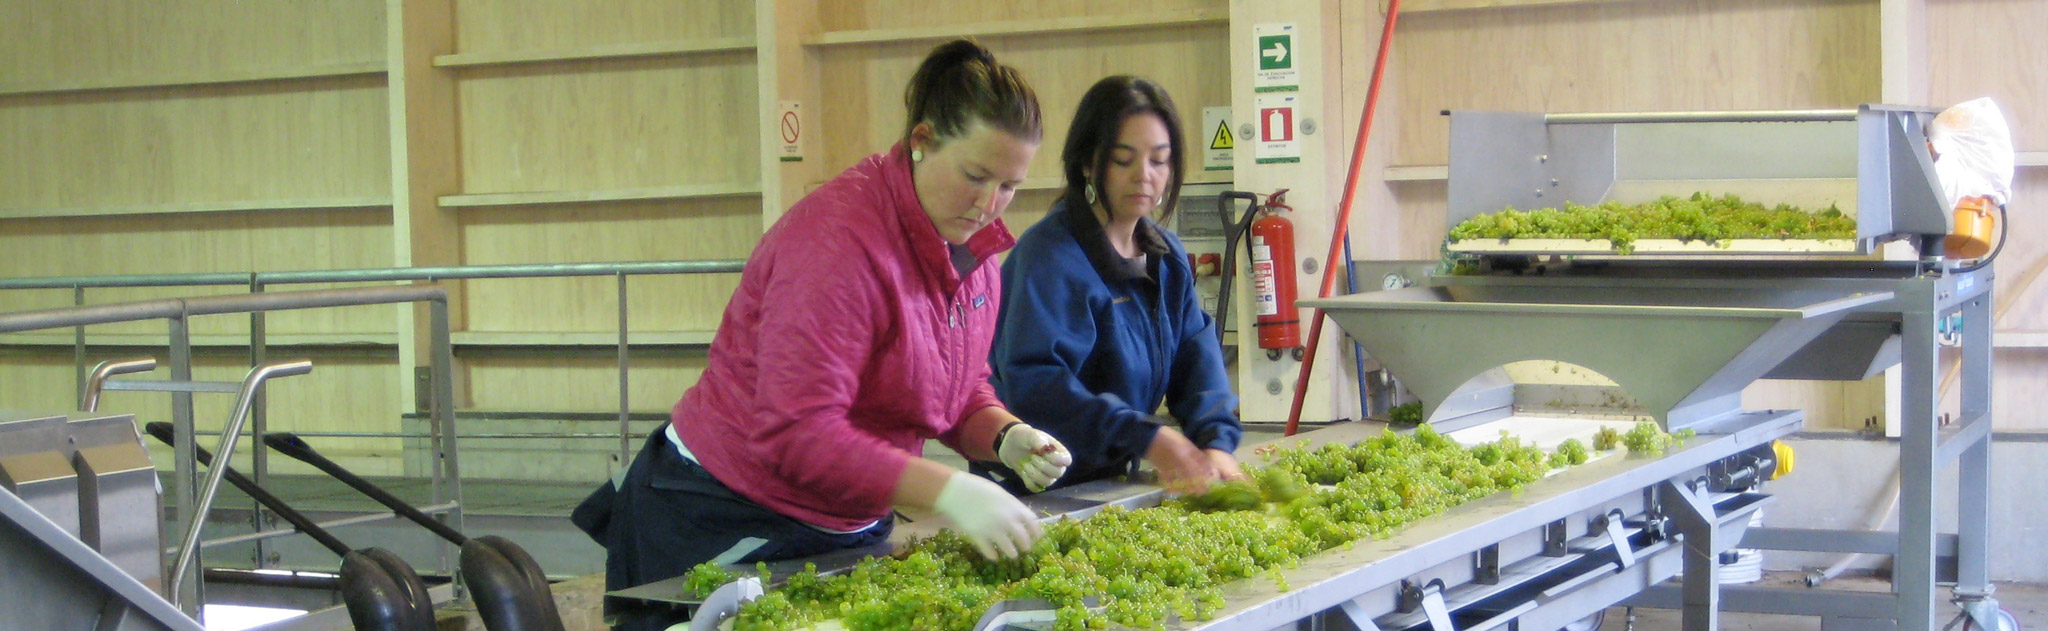 2011 Intern, Whitney Ulvestad, sorting grapes with Evelyn Vidal